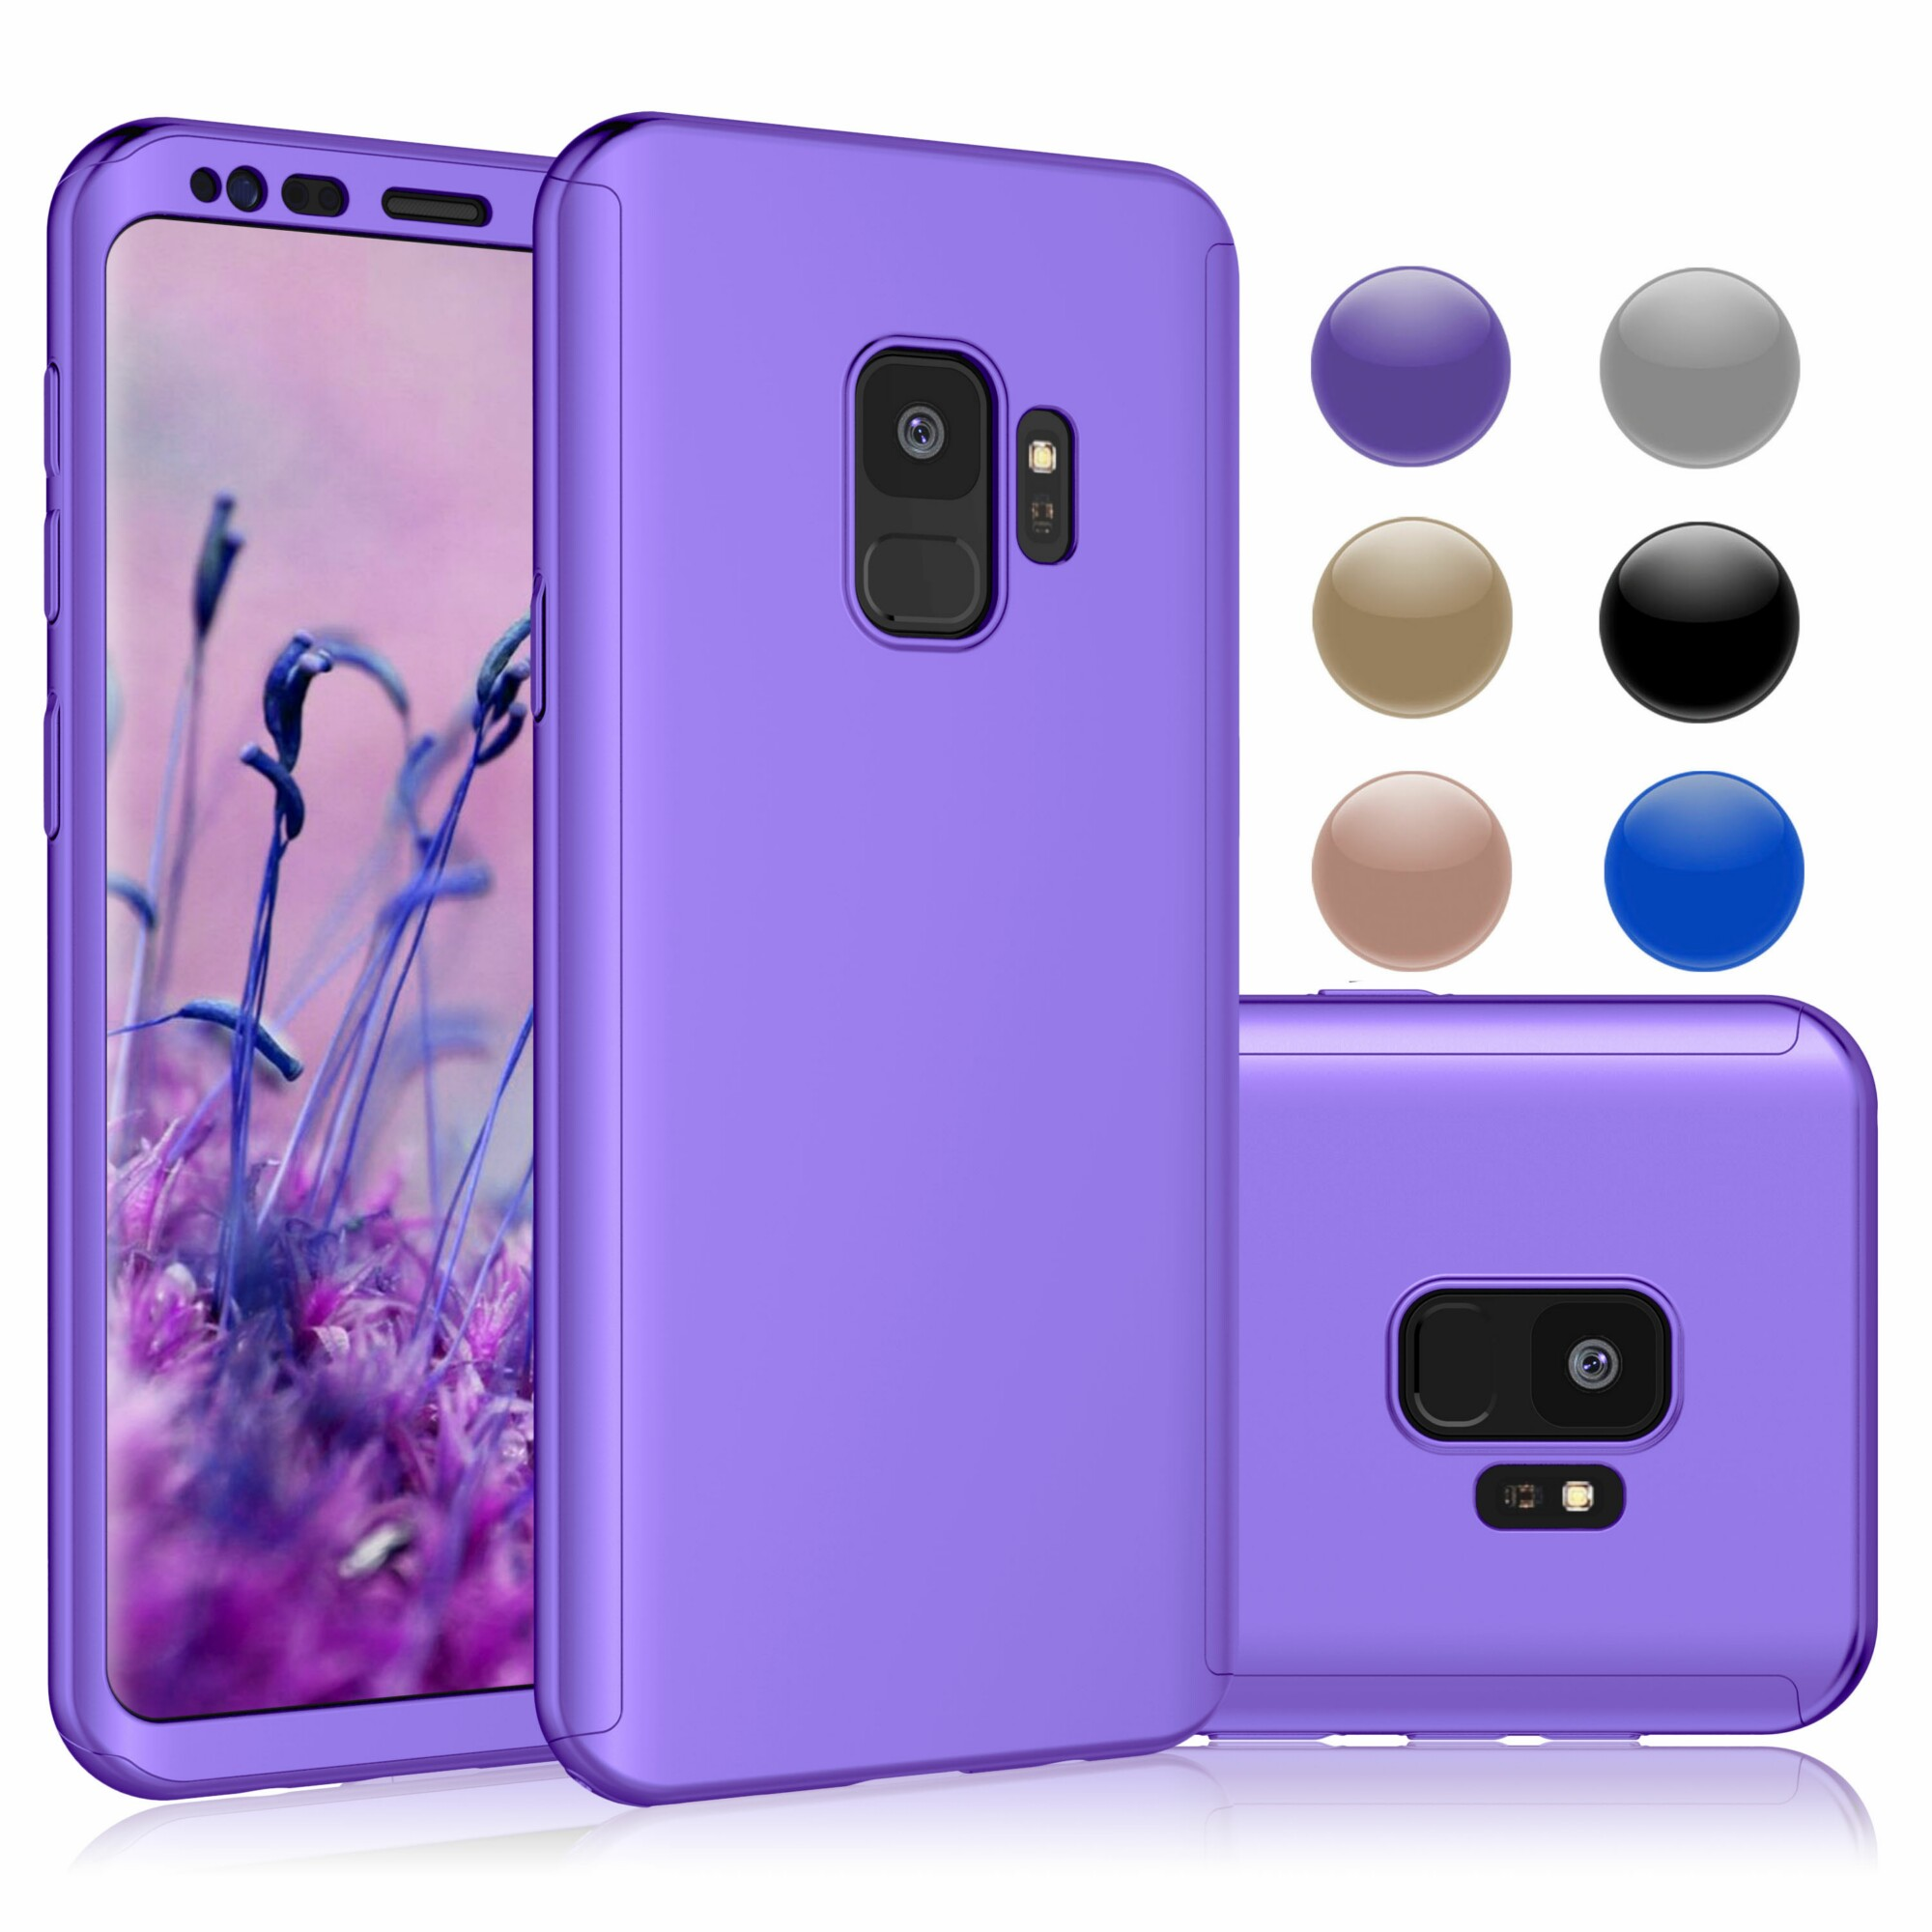 Galaxy S9 Case, Samsung S9 Sturdy Case, Galaxy S9 Cover, Njjex Hard Case Full Protective Plastic Case Cover For Samsung Galaxy S9 5.8 Inch -Purple